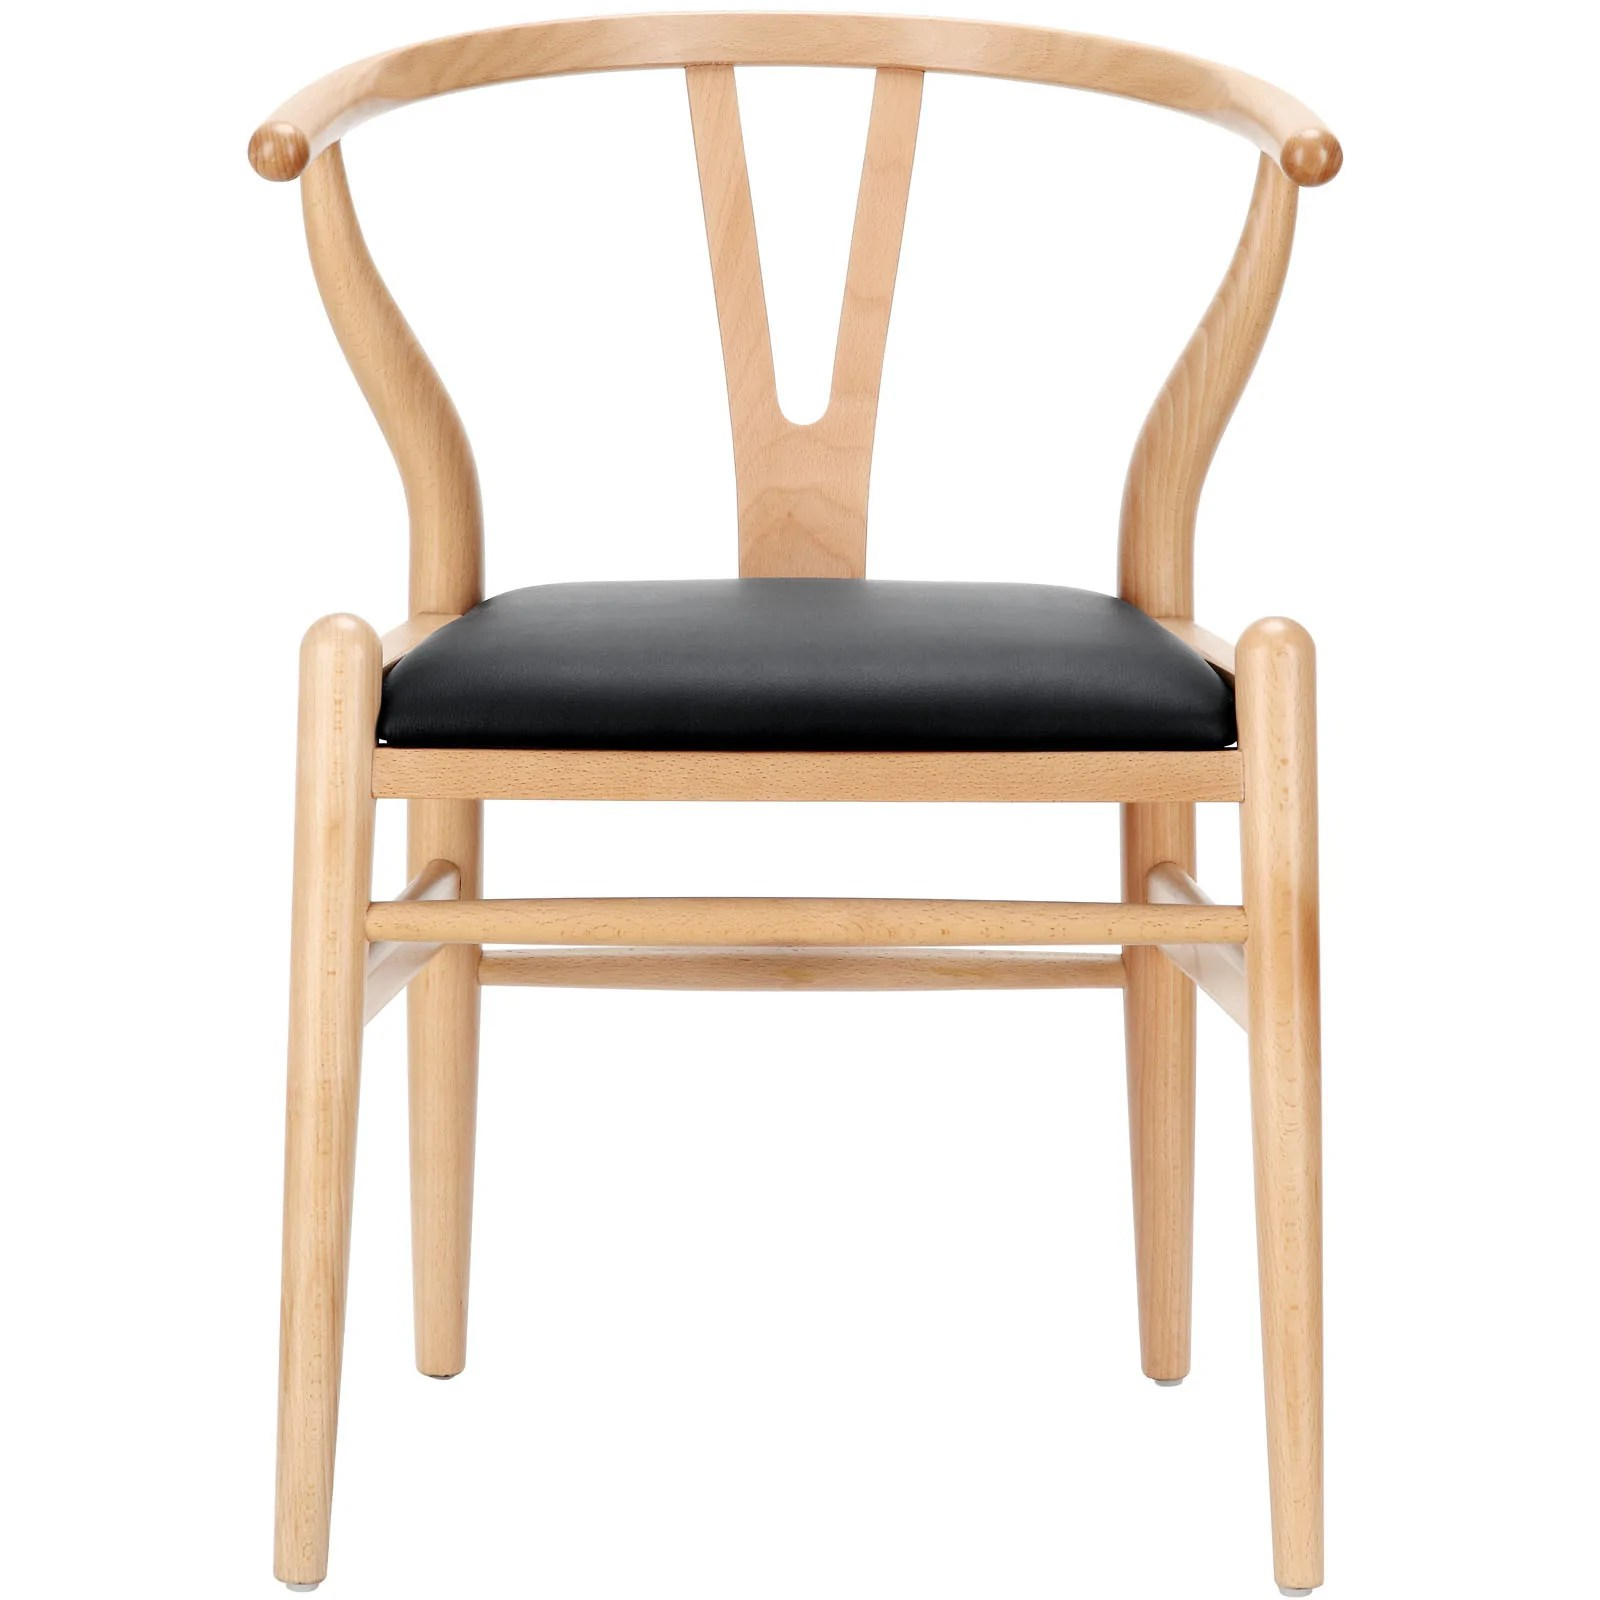 Wishbone Chairs Hans Wegner Wishbone Chair Reproduction